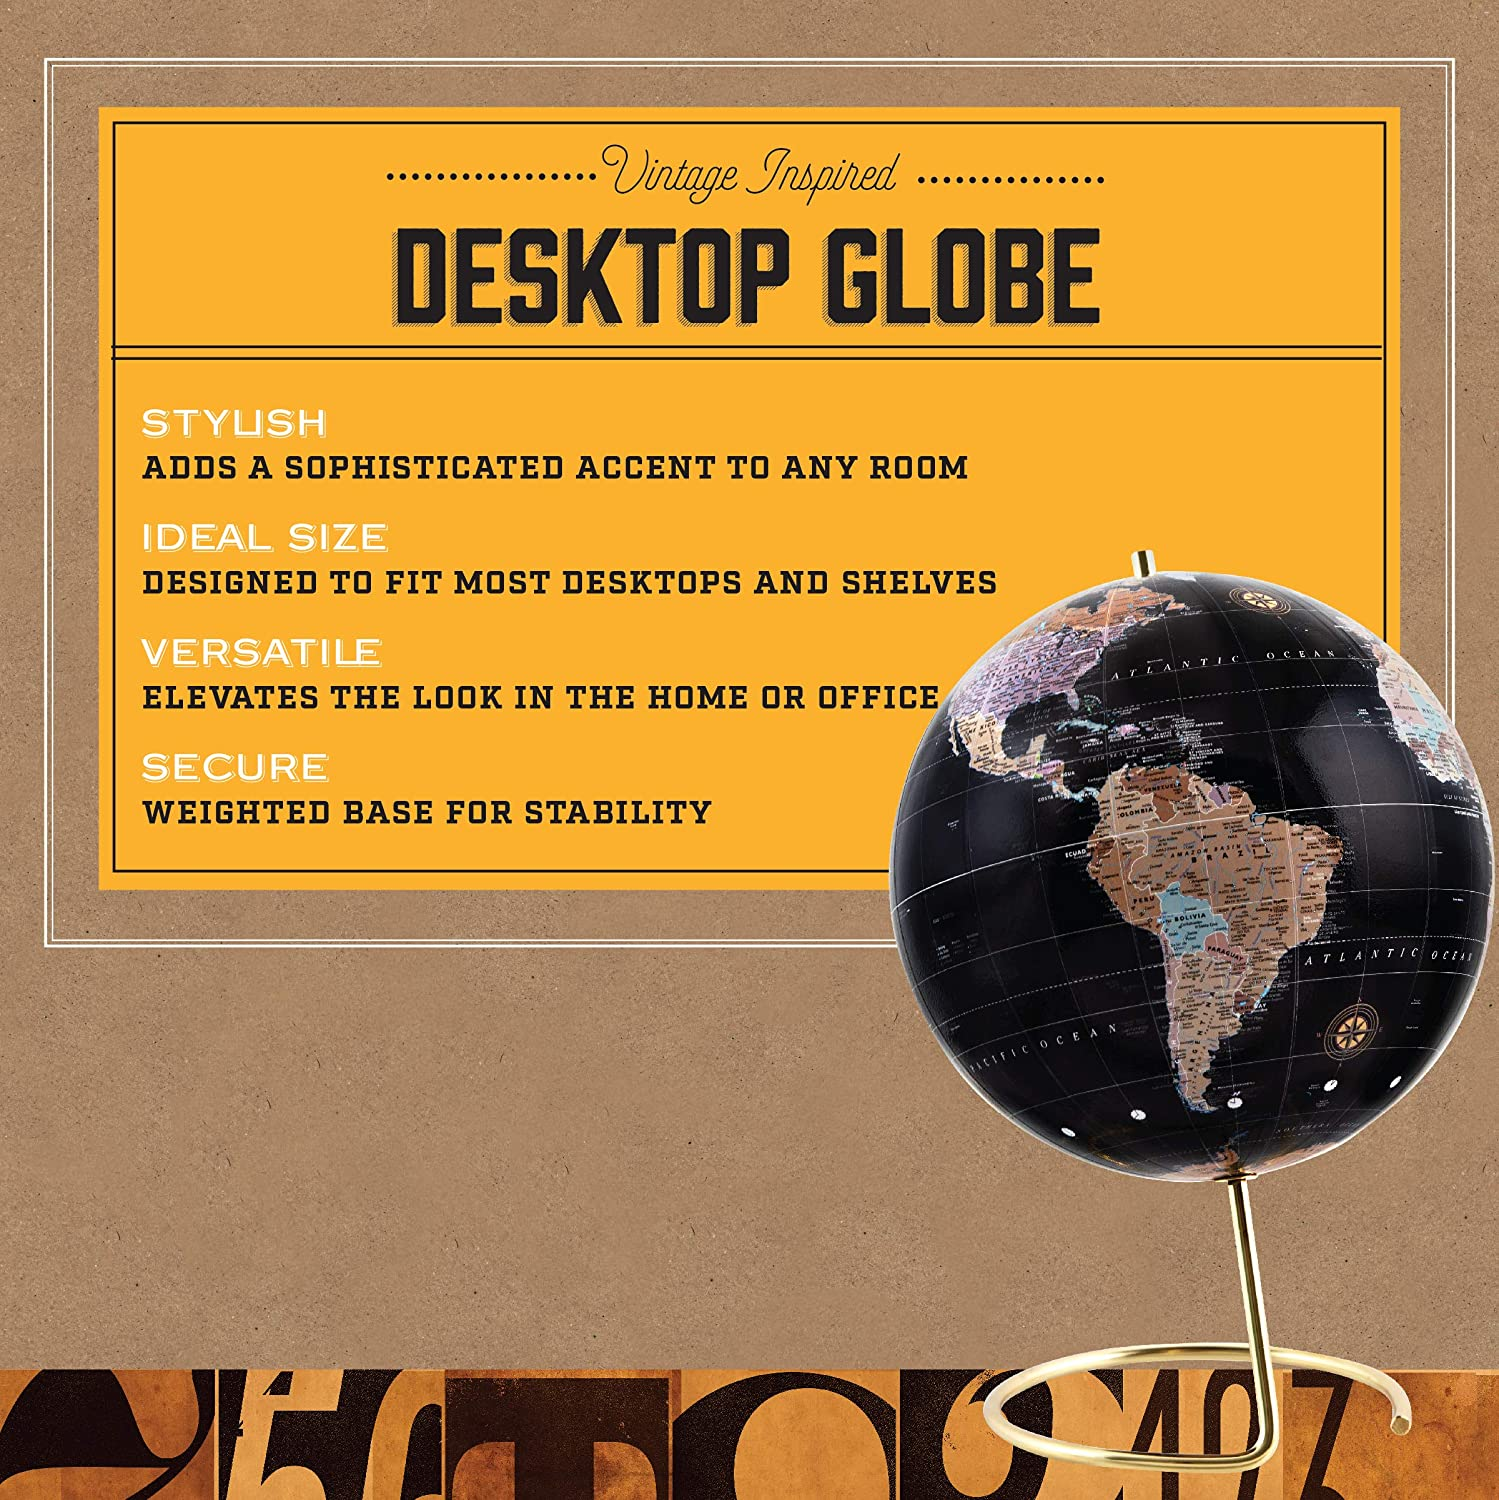 Best Wanderlust Gift for Traveler or Jetsetter Vintage-Style Tabletop Home or Office D/écor Desktop Globe Refinery /& Co Contemporary Decorative Spinning World with Gold Polished Brass Base